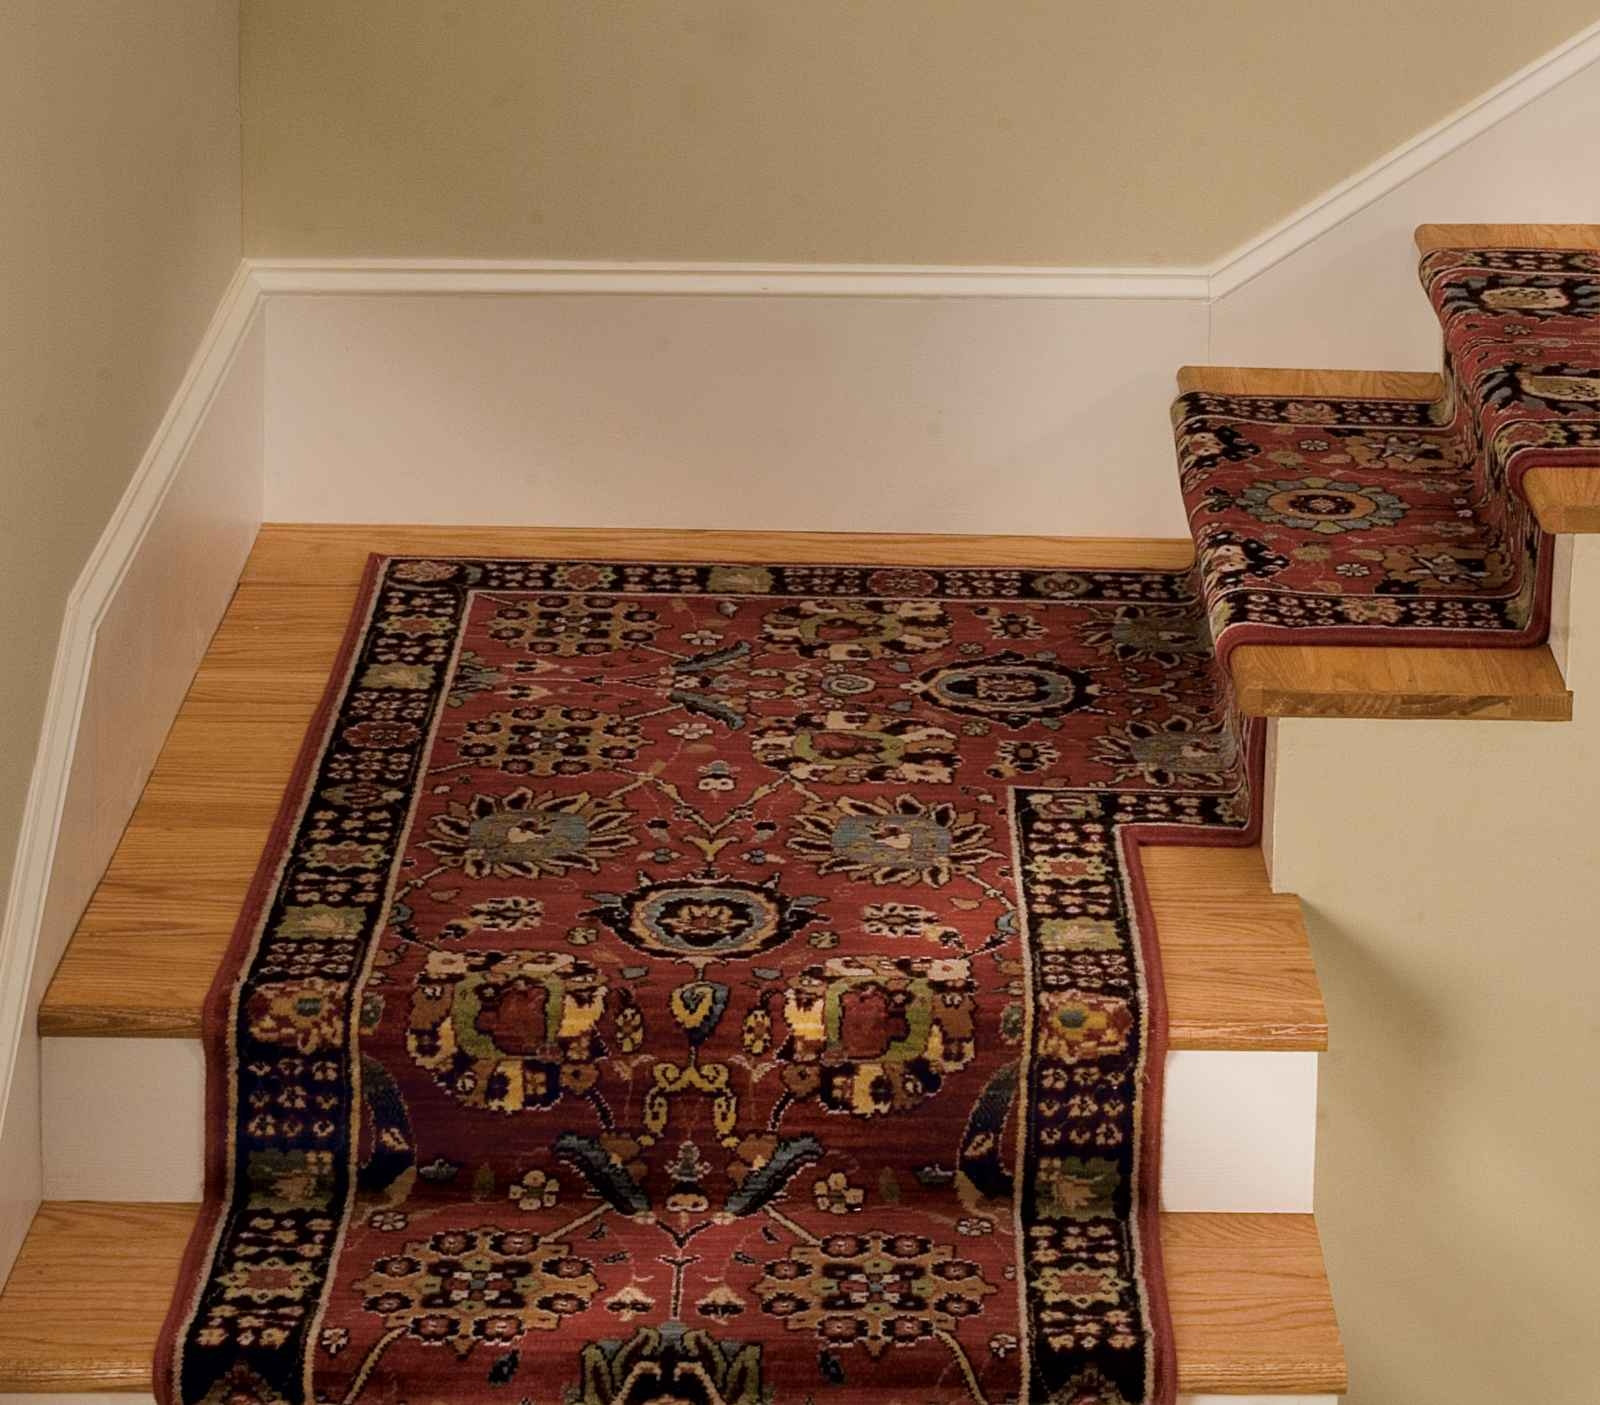 Carpet Stair Runner For Home New Home Pinterest Stair Treads Inside Non Slip Carpet Stair Treads Indoor (Image 3 of 15)